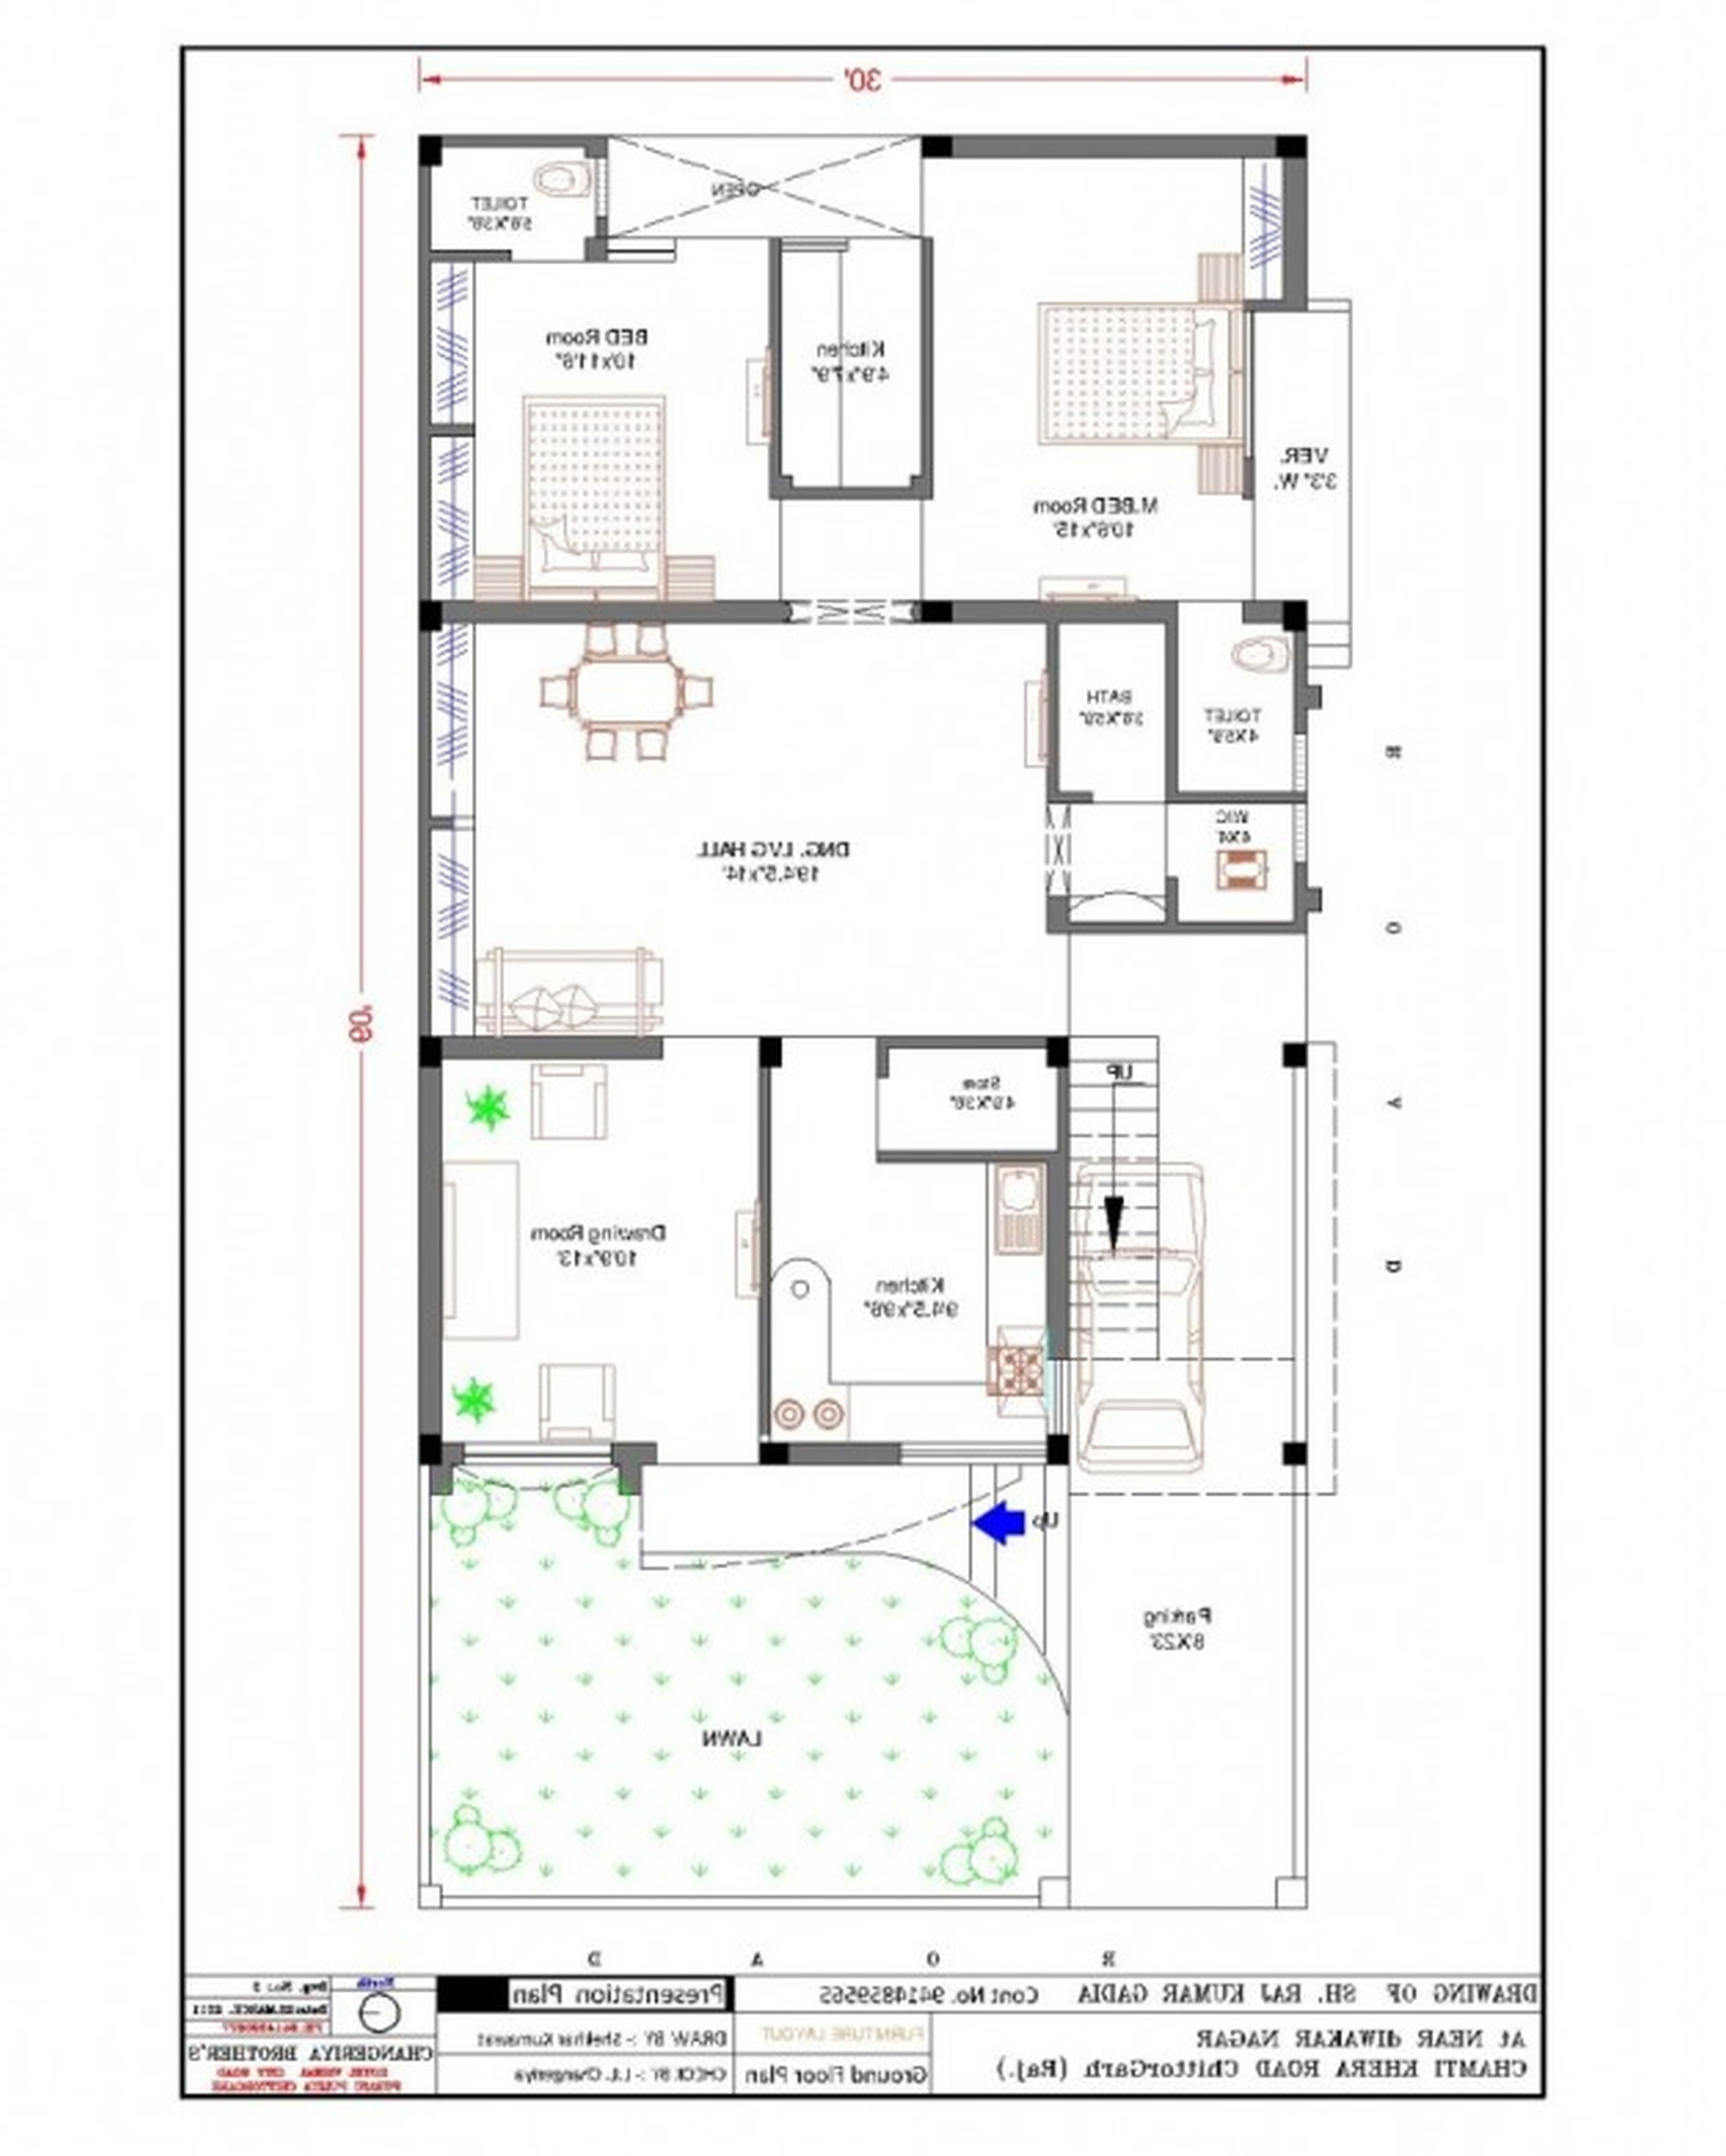 Epic Lovely Indian Home Plan Design Online Free House Design Intended For Indian Home Plans Ideas House Generation